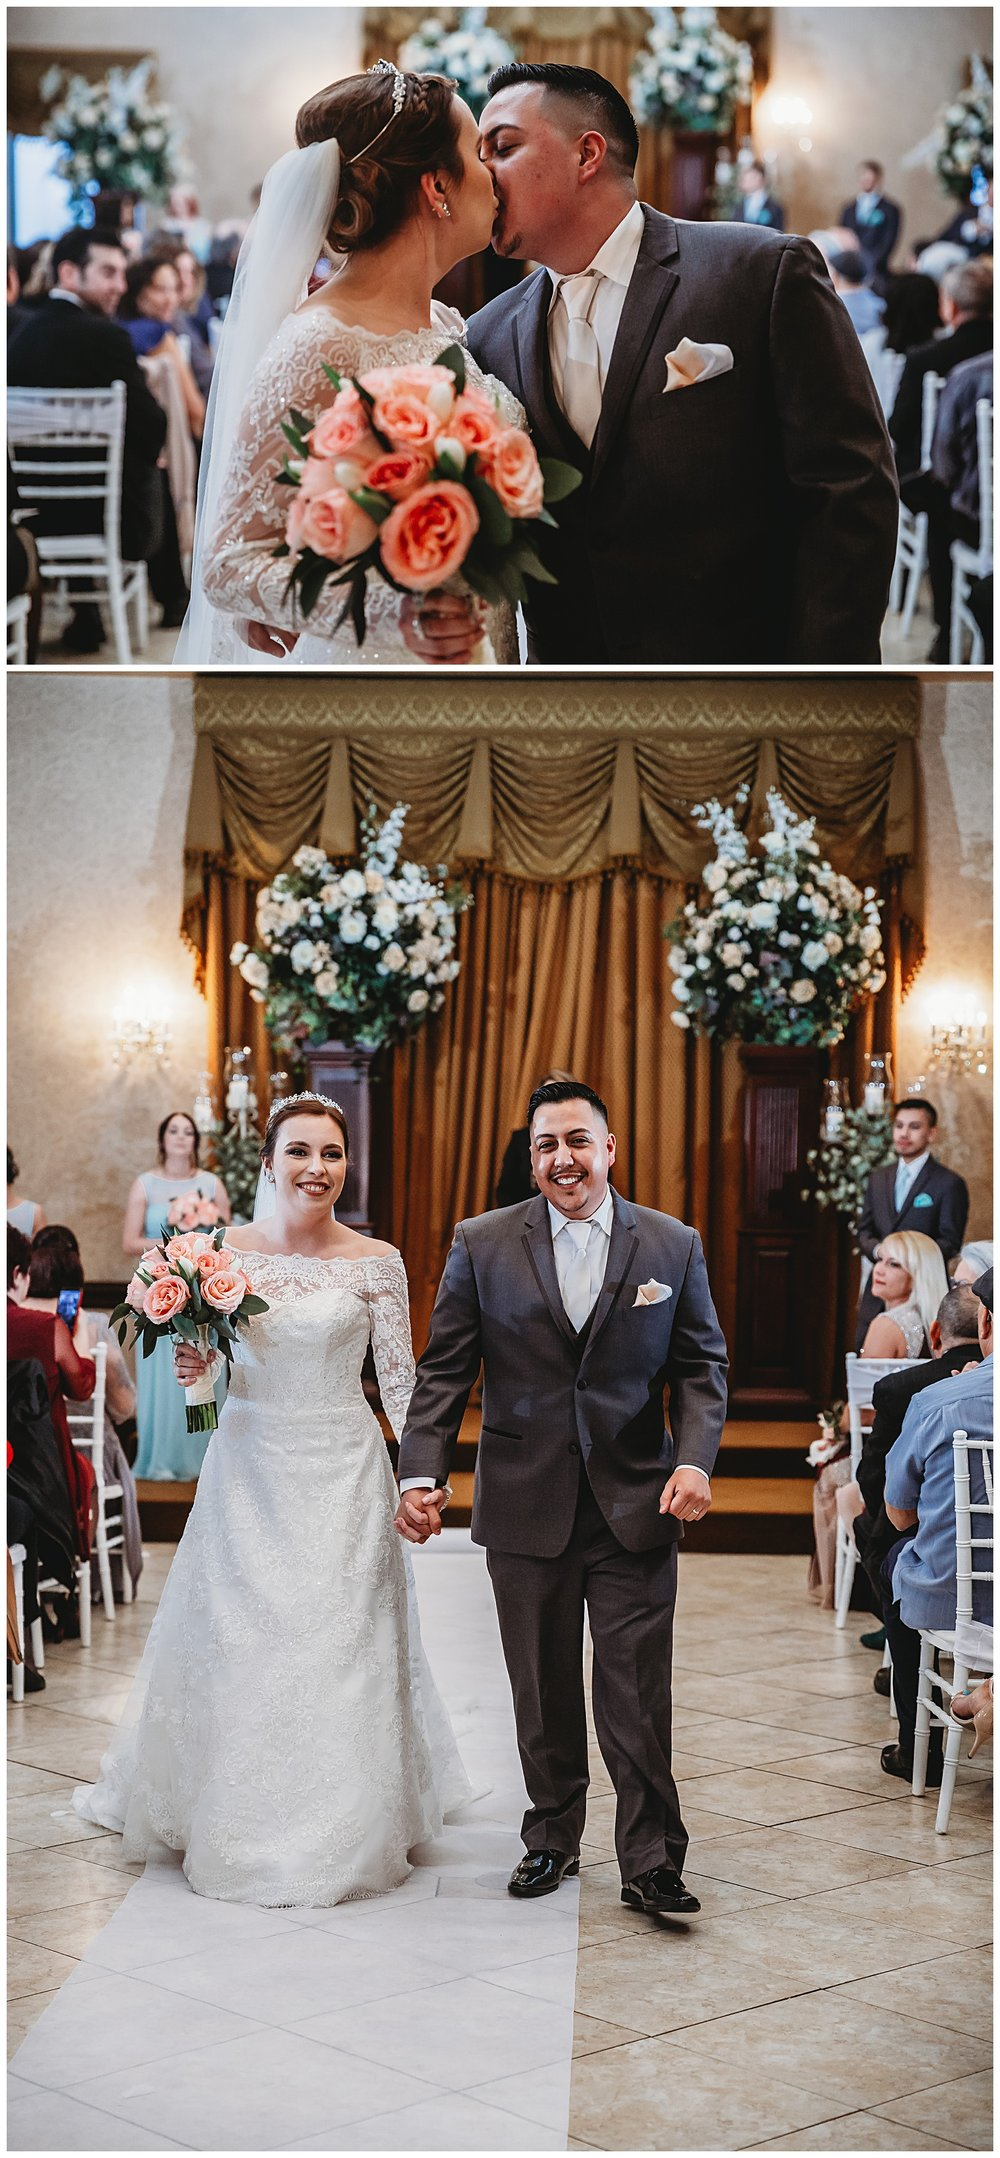 Crystal Gardens Southgate Wedding Catchfly Photography Chelsea + Jesse_0370.jpg